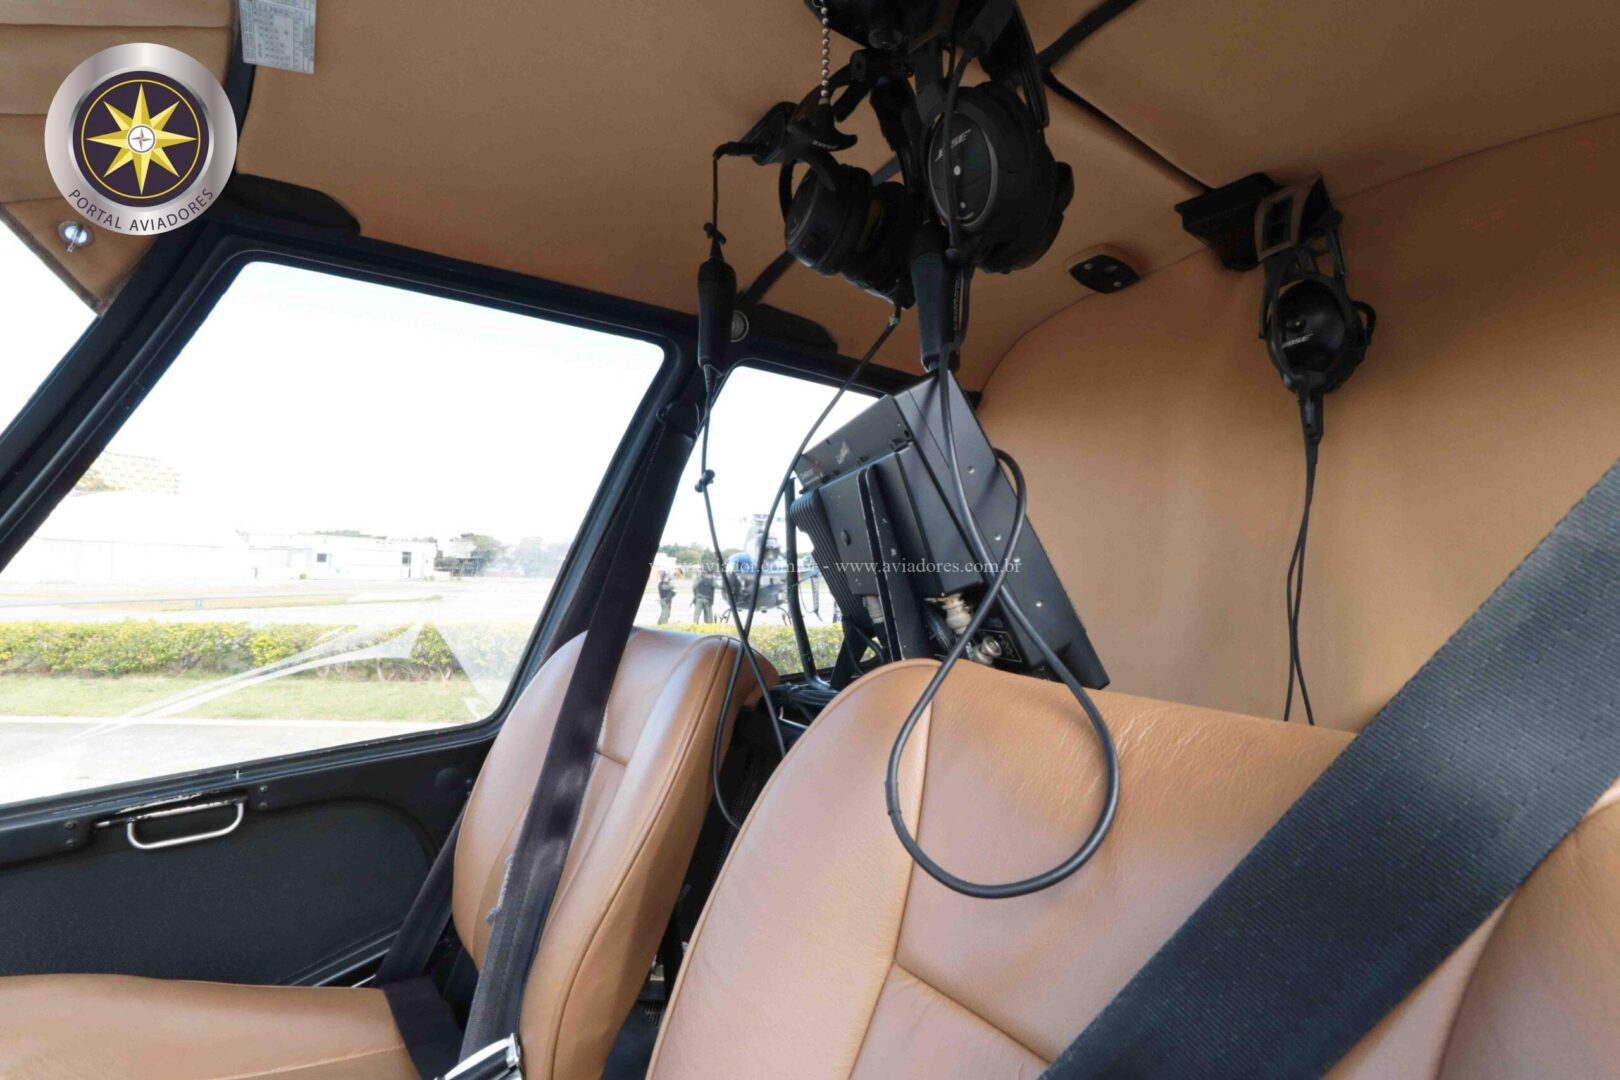 Helicóptero Robinson R44 Raven II Newscopter – Ano 2009 – 1.944 H.T. full